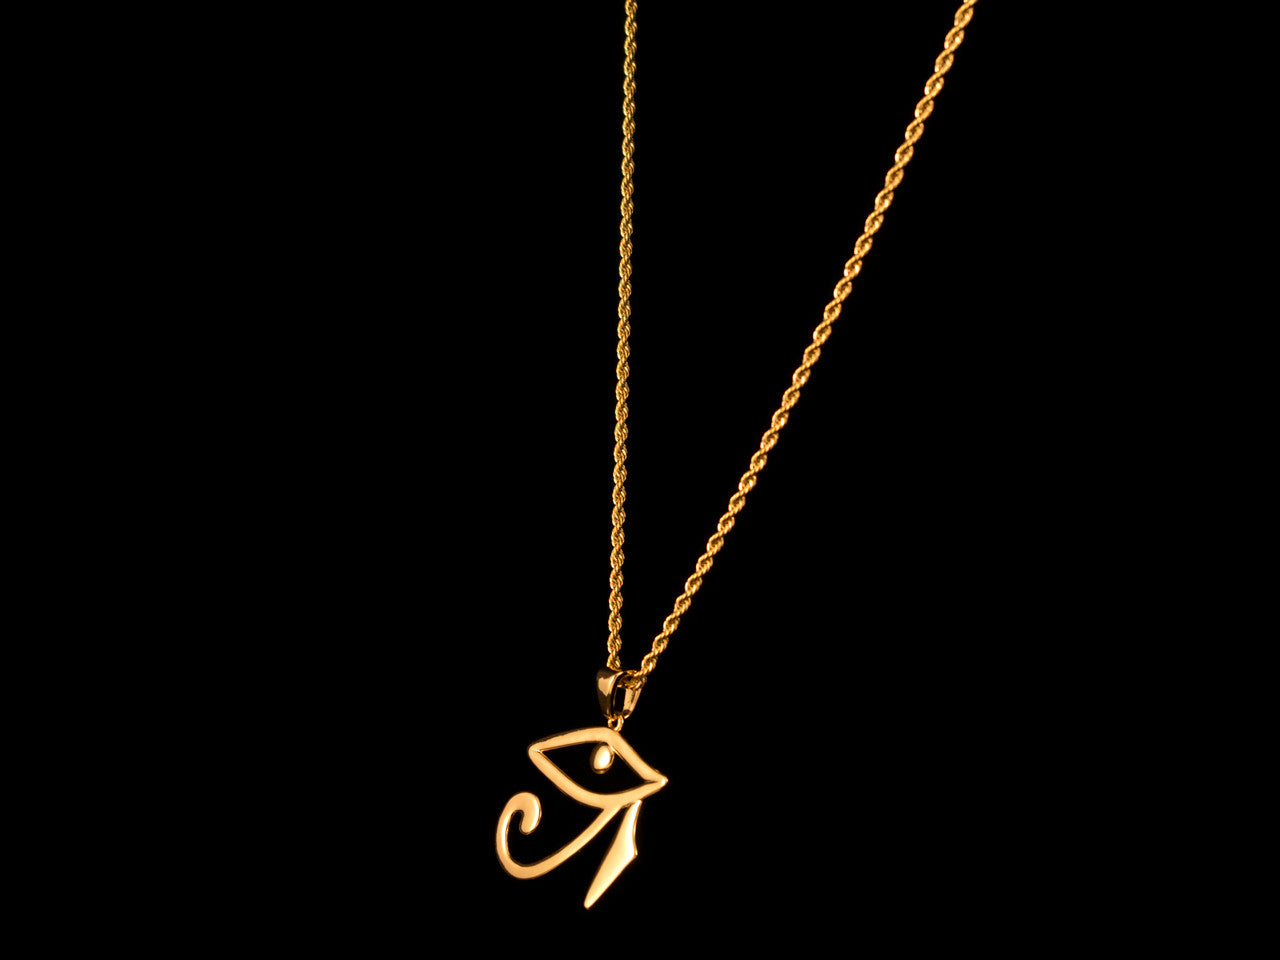 Gold Egyptian Eye of Horus